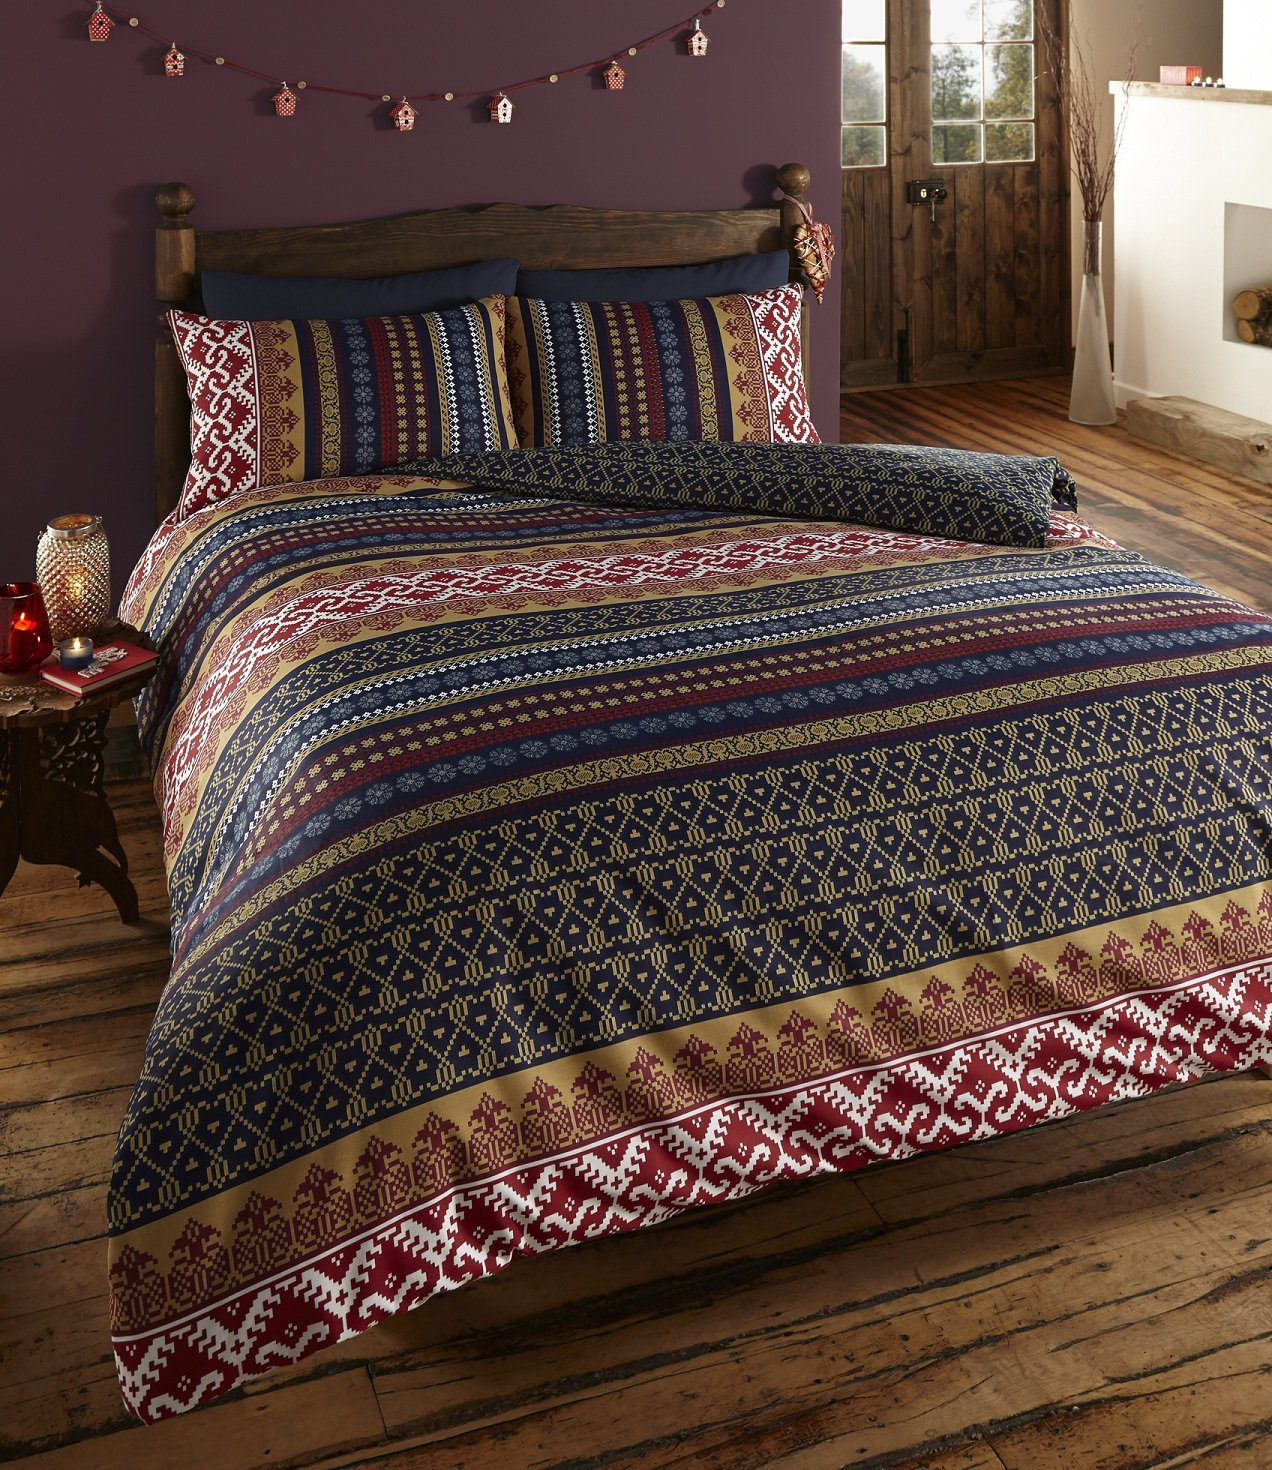 de cama ethnic indian print bedding quilt cover bed set with